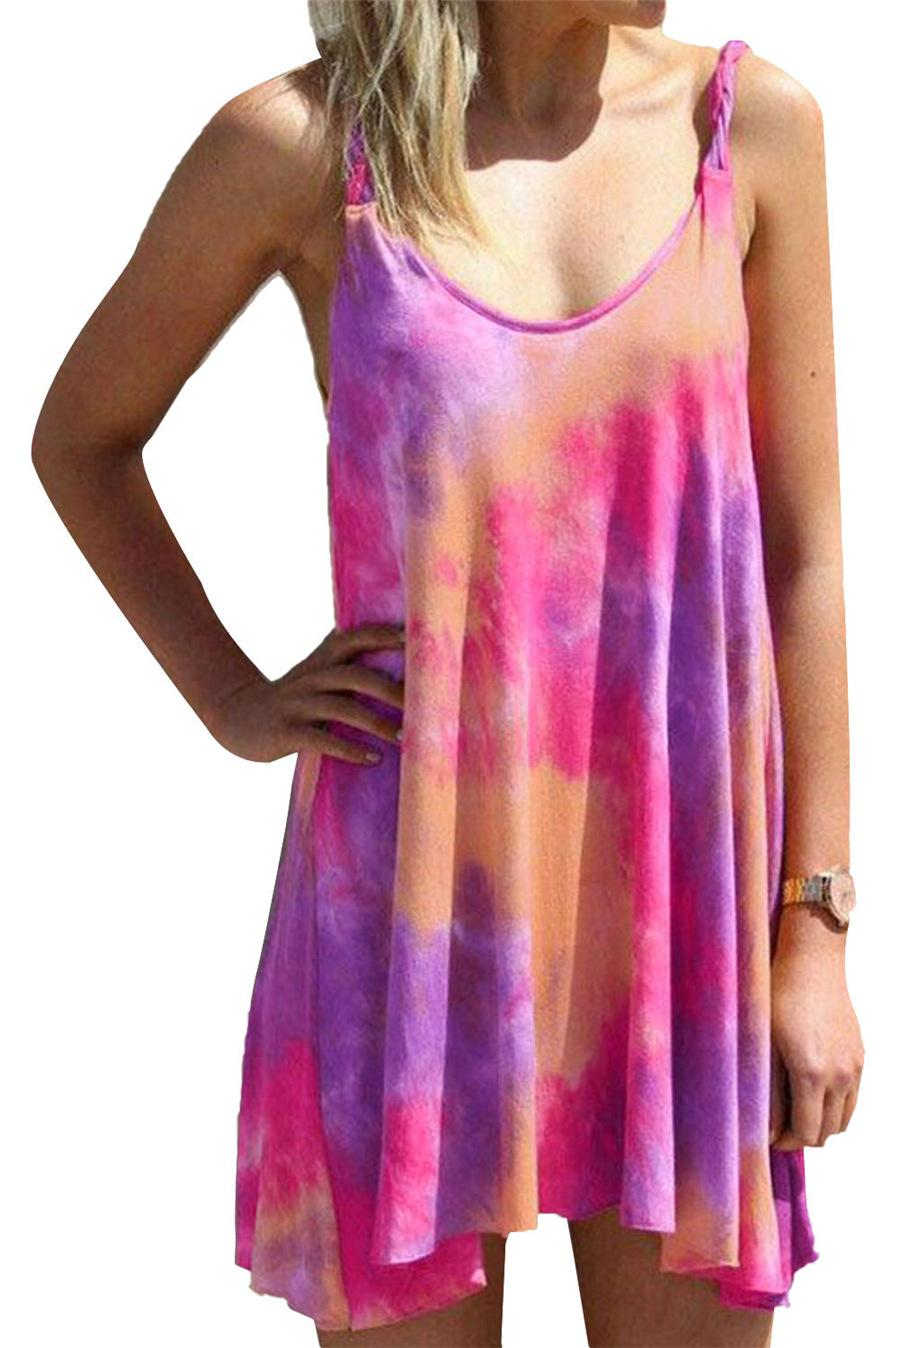 Women Tie-dyed Casual Dress Scoop Neck Summer Beach Cover-Ups 50% Spaghetti Straps Fashion Apparel A-Line Leisure Mini Dress